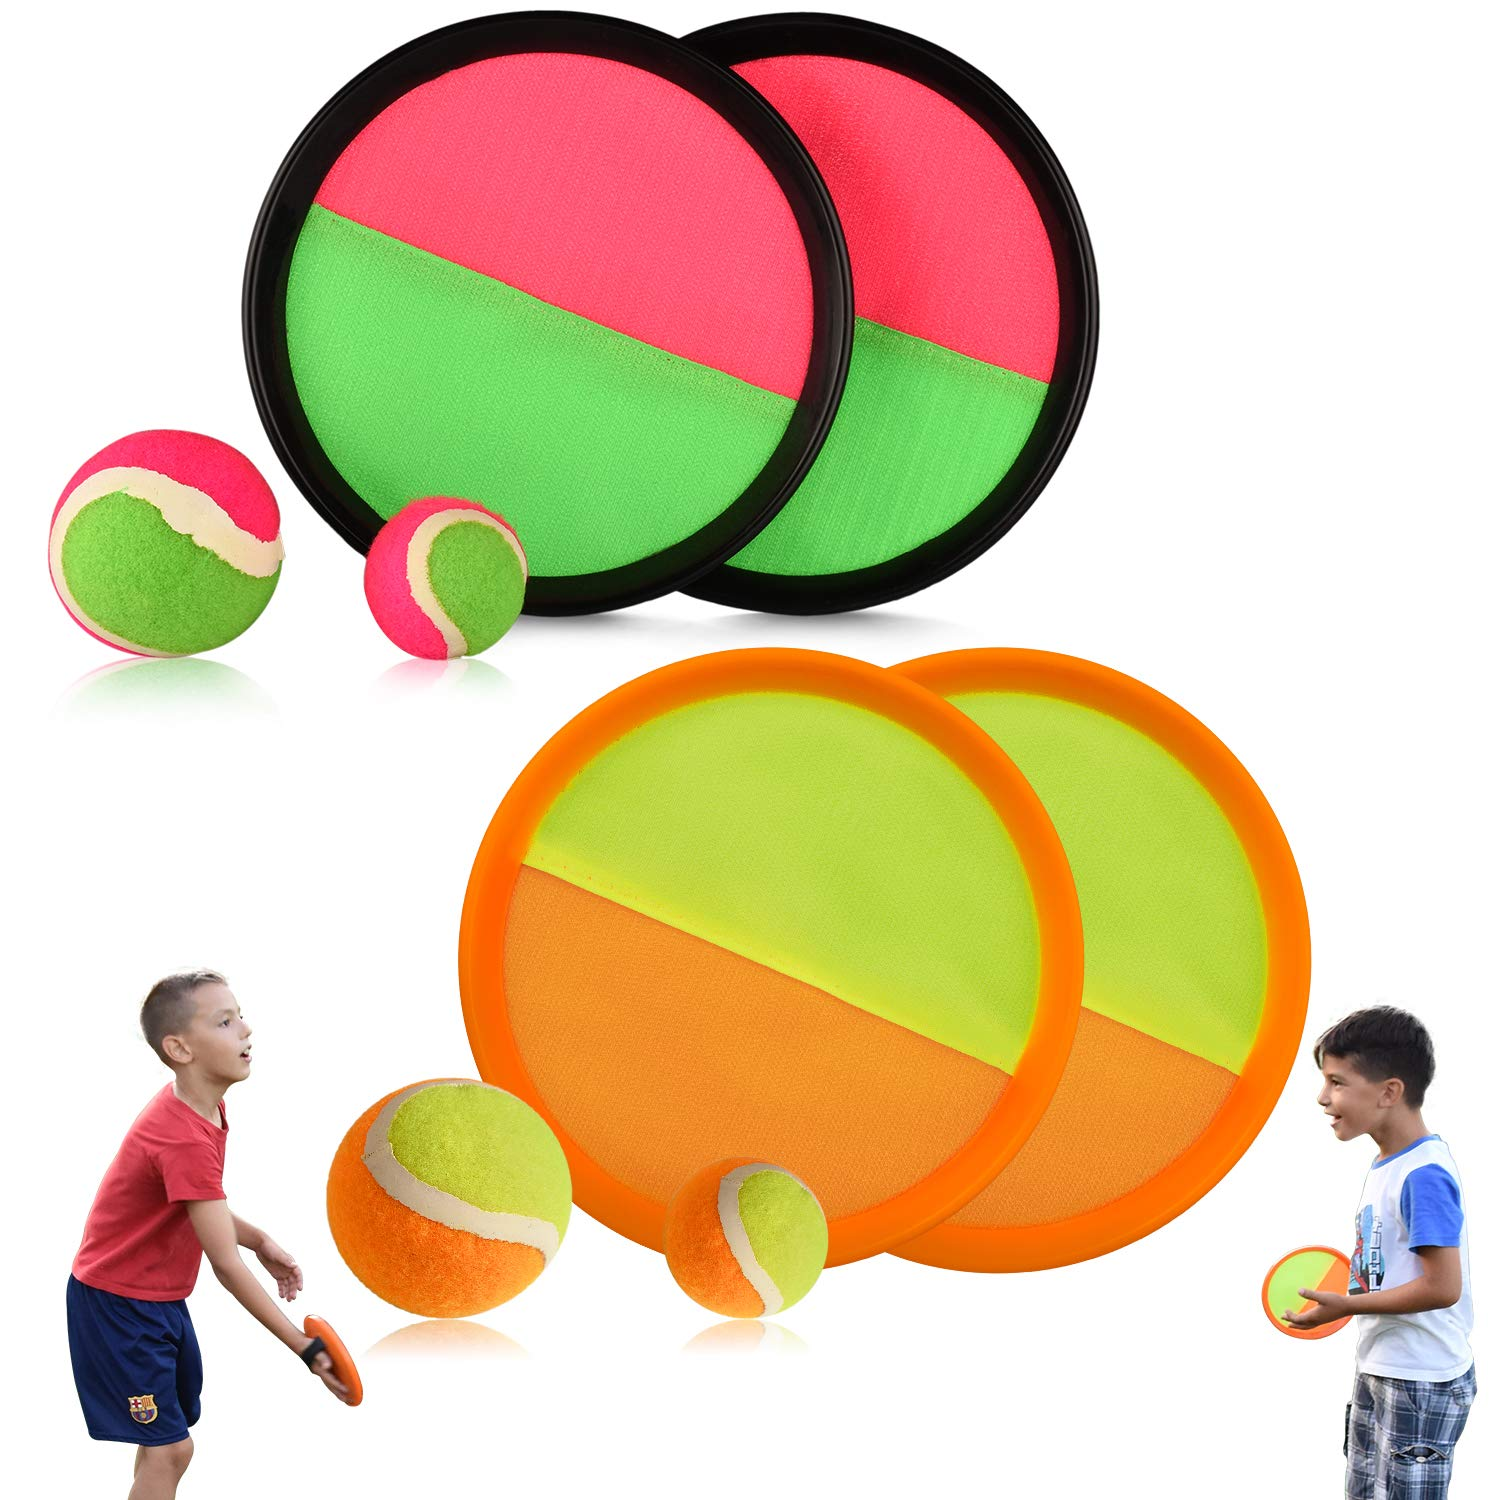 Abco Tech Paddle Toss and Catch Game Set - Set of 2 - Hook and Loop Self-Stick - Disc Paddles and Toss Ball Sport Game - 4 Paddles, 2 Large Balls, 2 ...